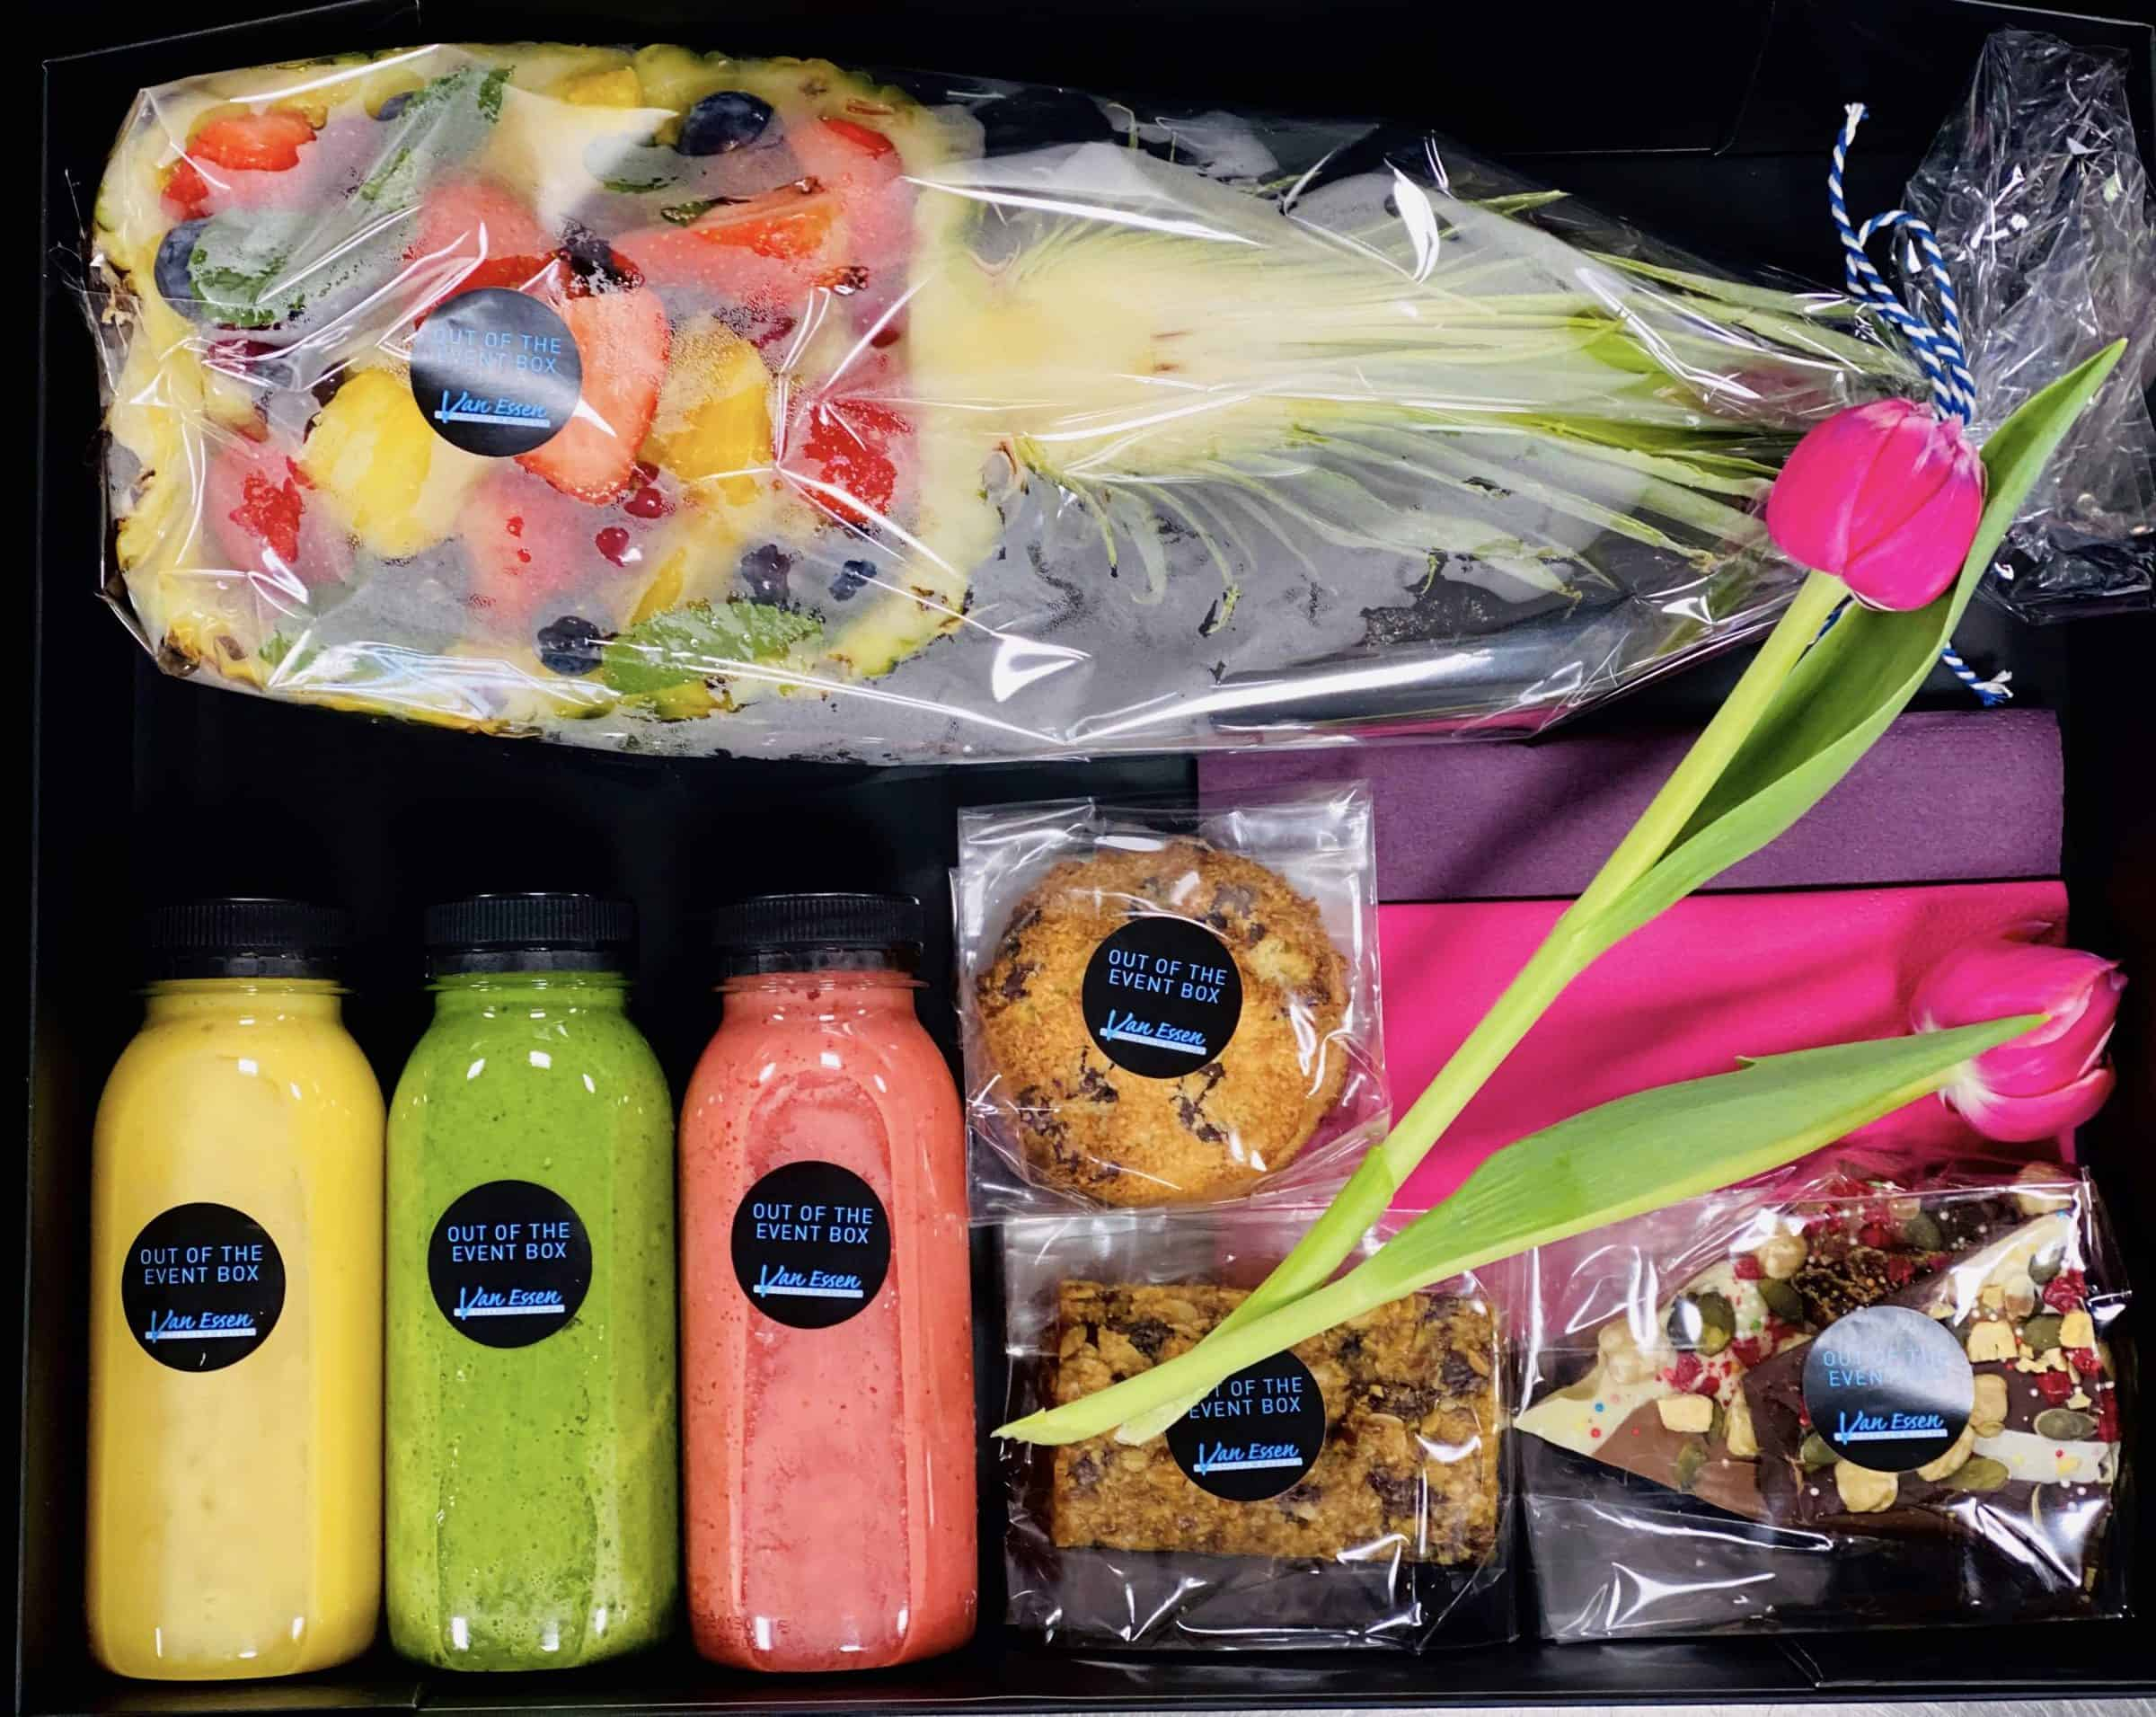 Van Essen Catering - lunchbox - out of the event box - fruit - smoothies - virtual event